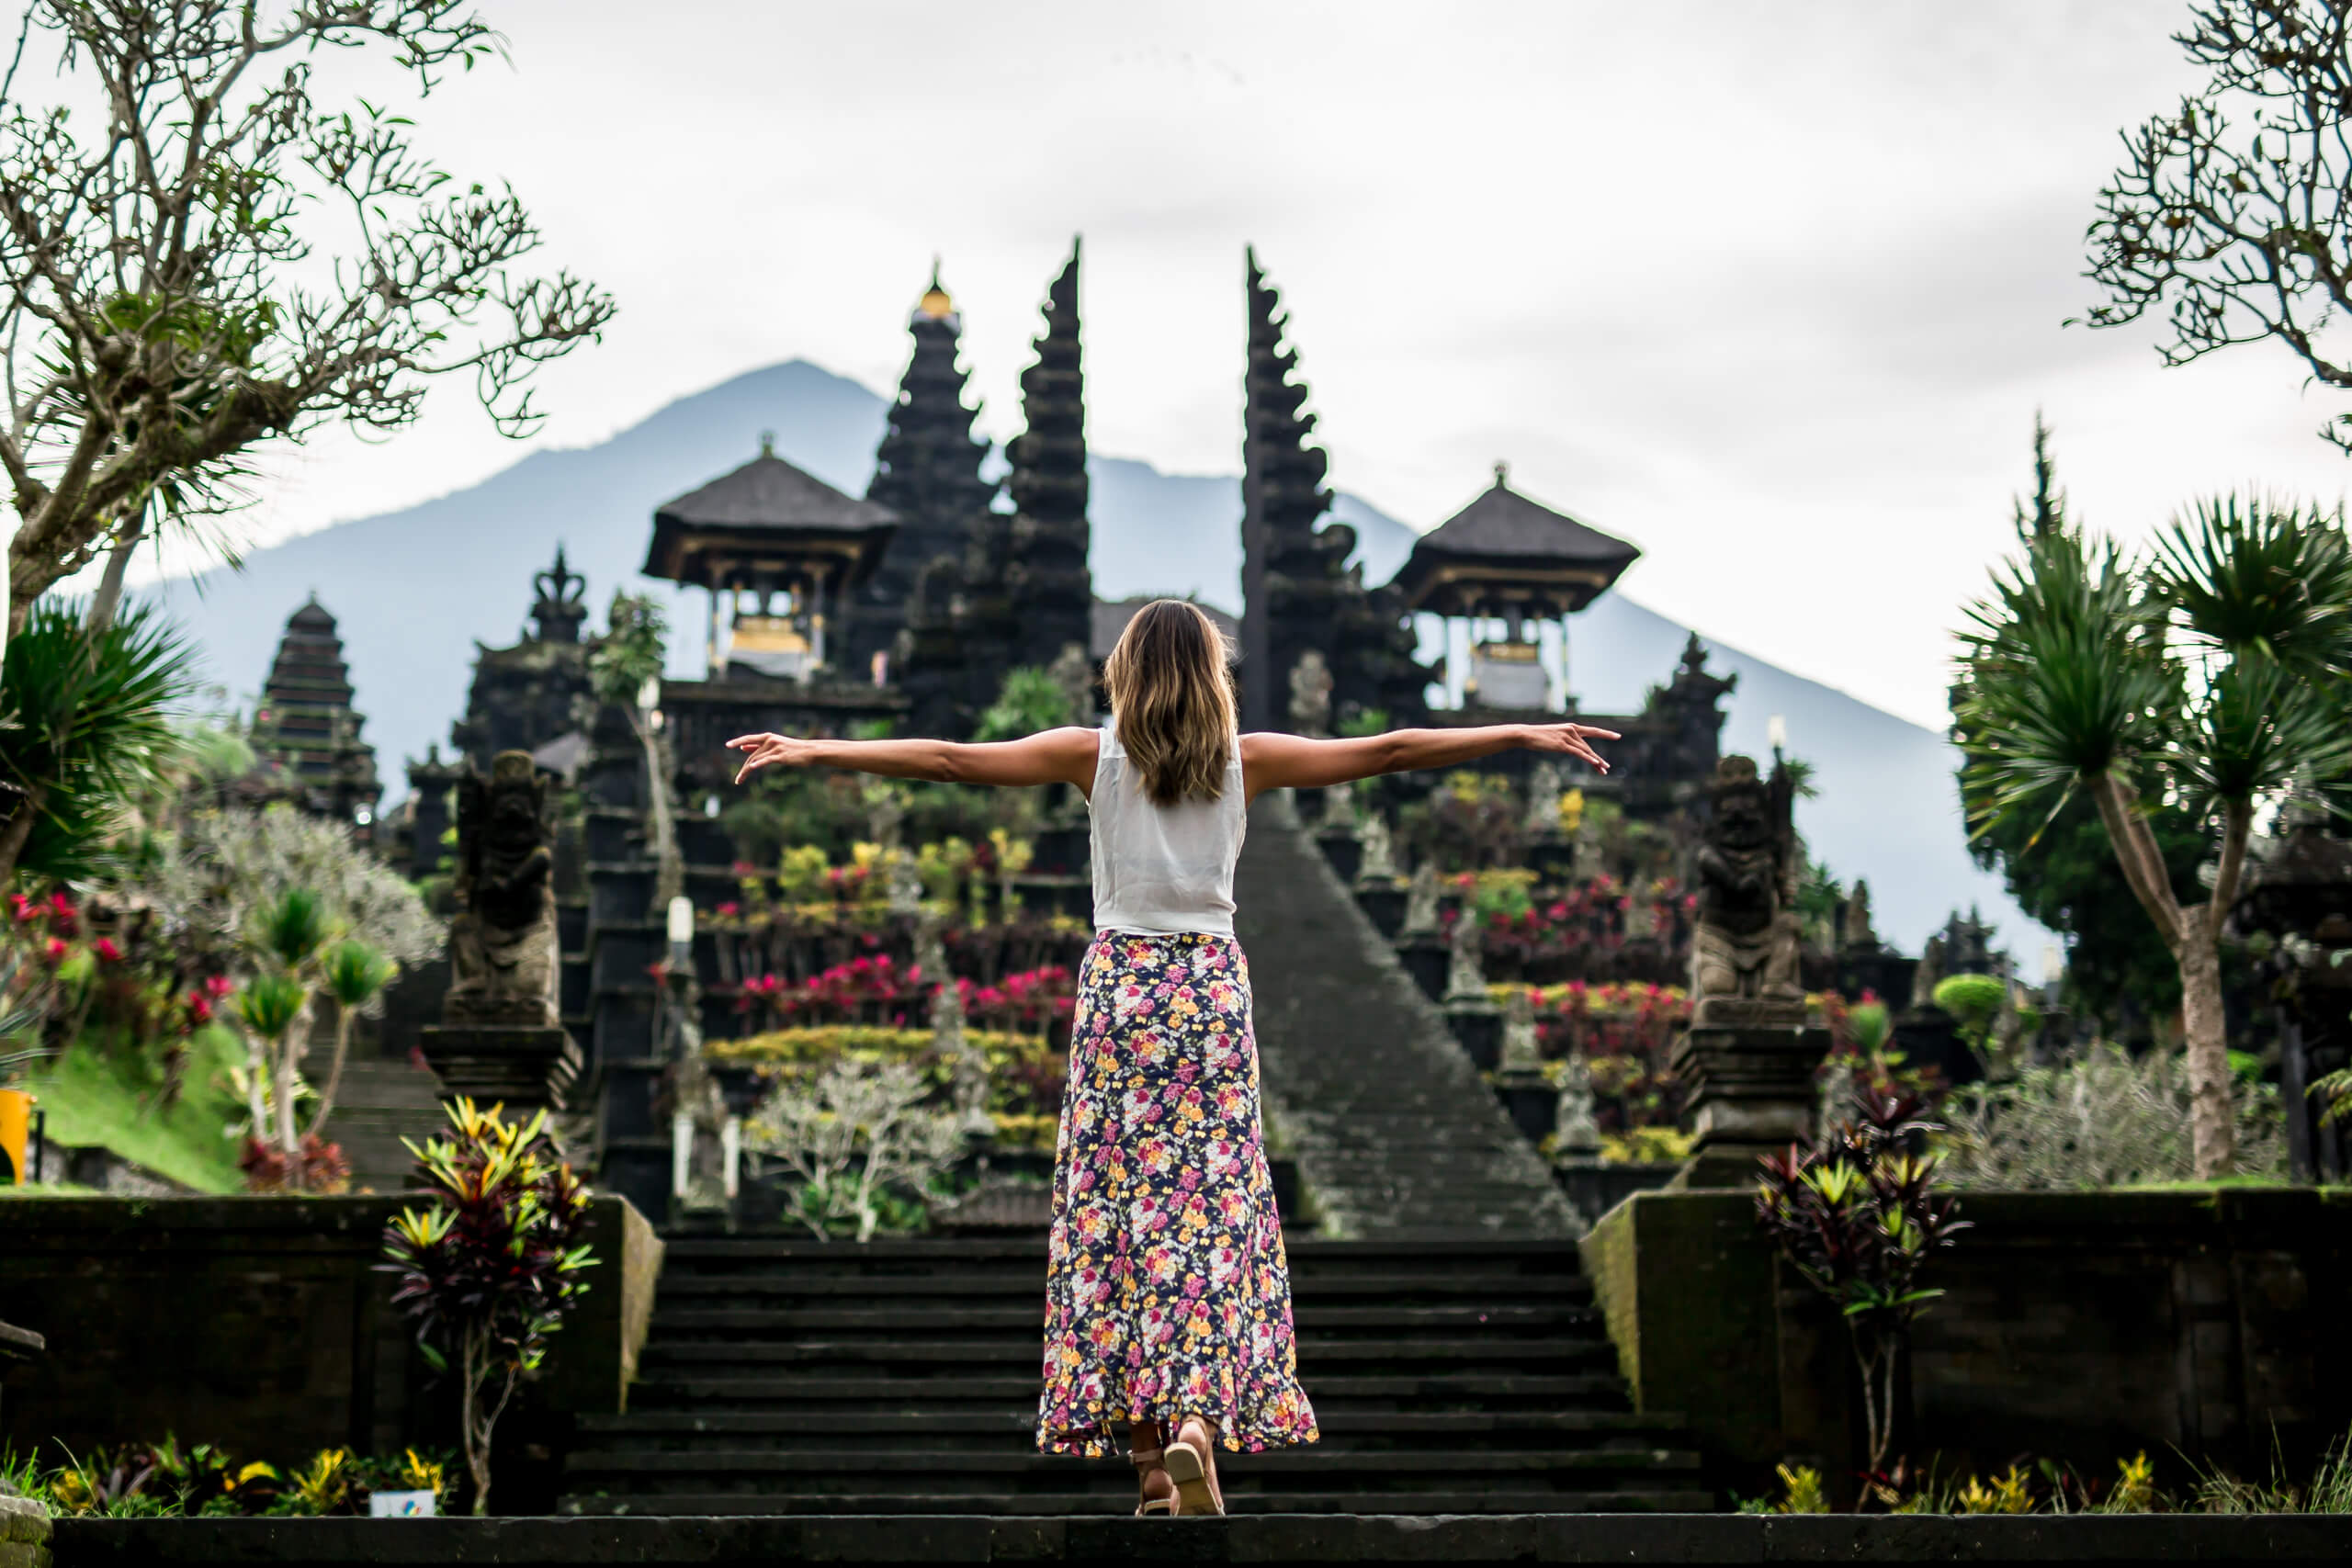 BESAKIH TEMPLE | The first steps of many to the top of Bali's greatest temple.